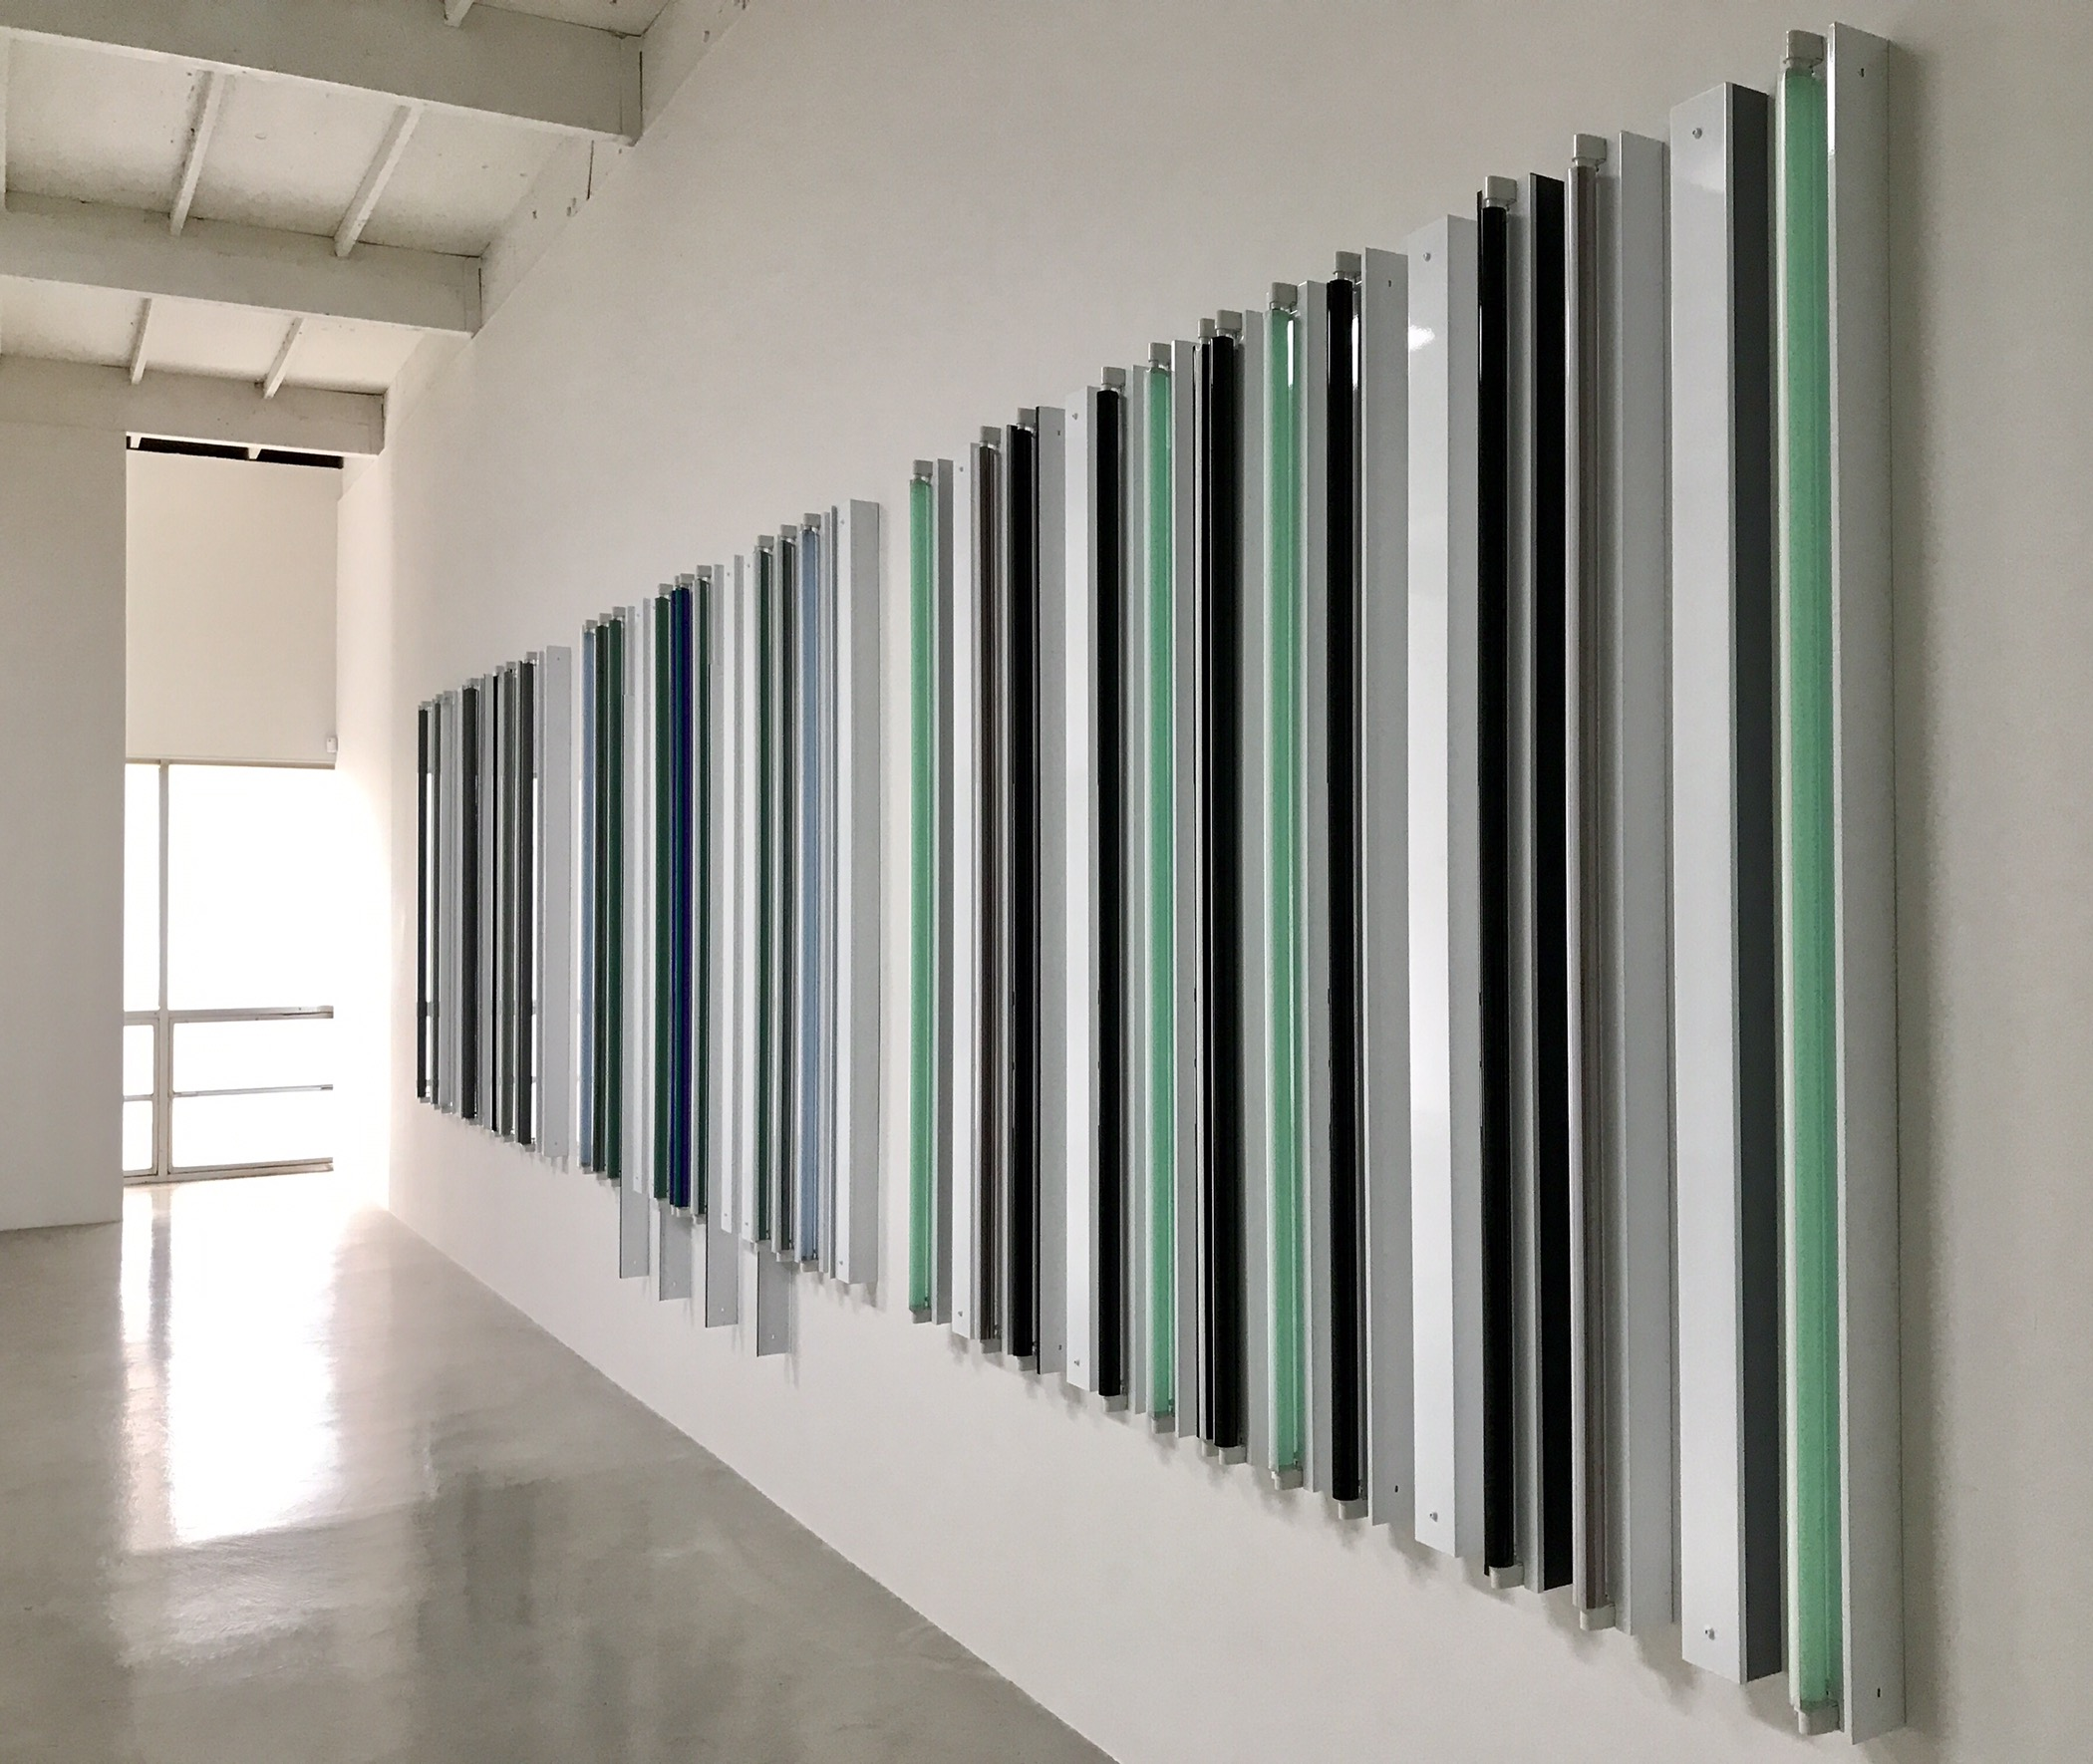 Light Drawings- Robert Irwin